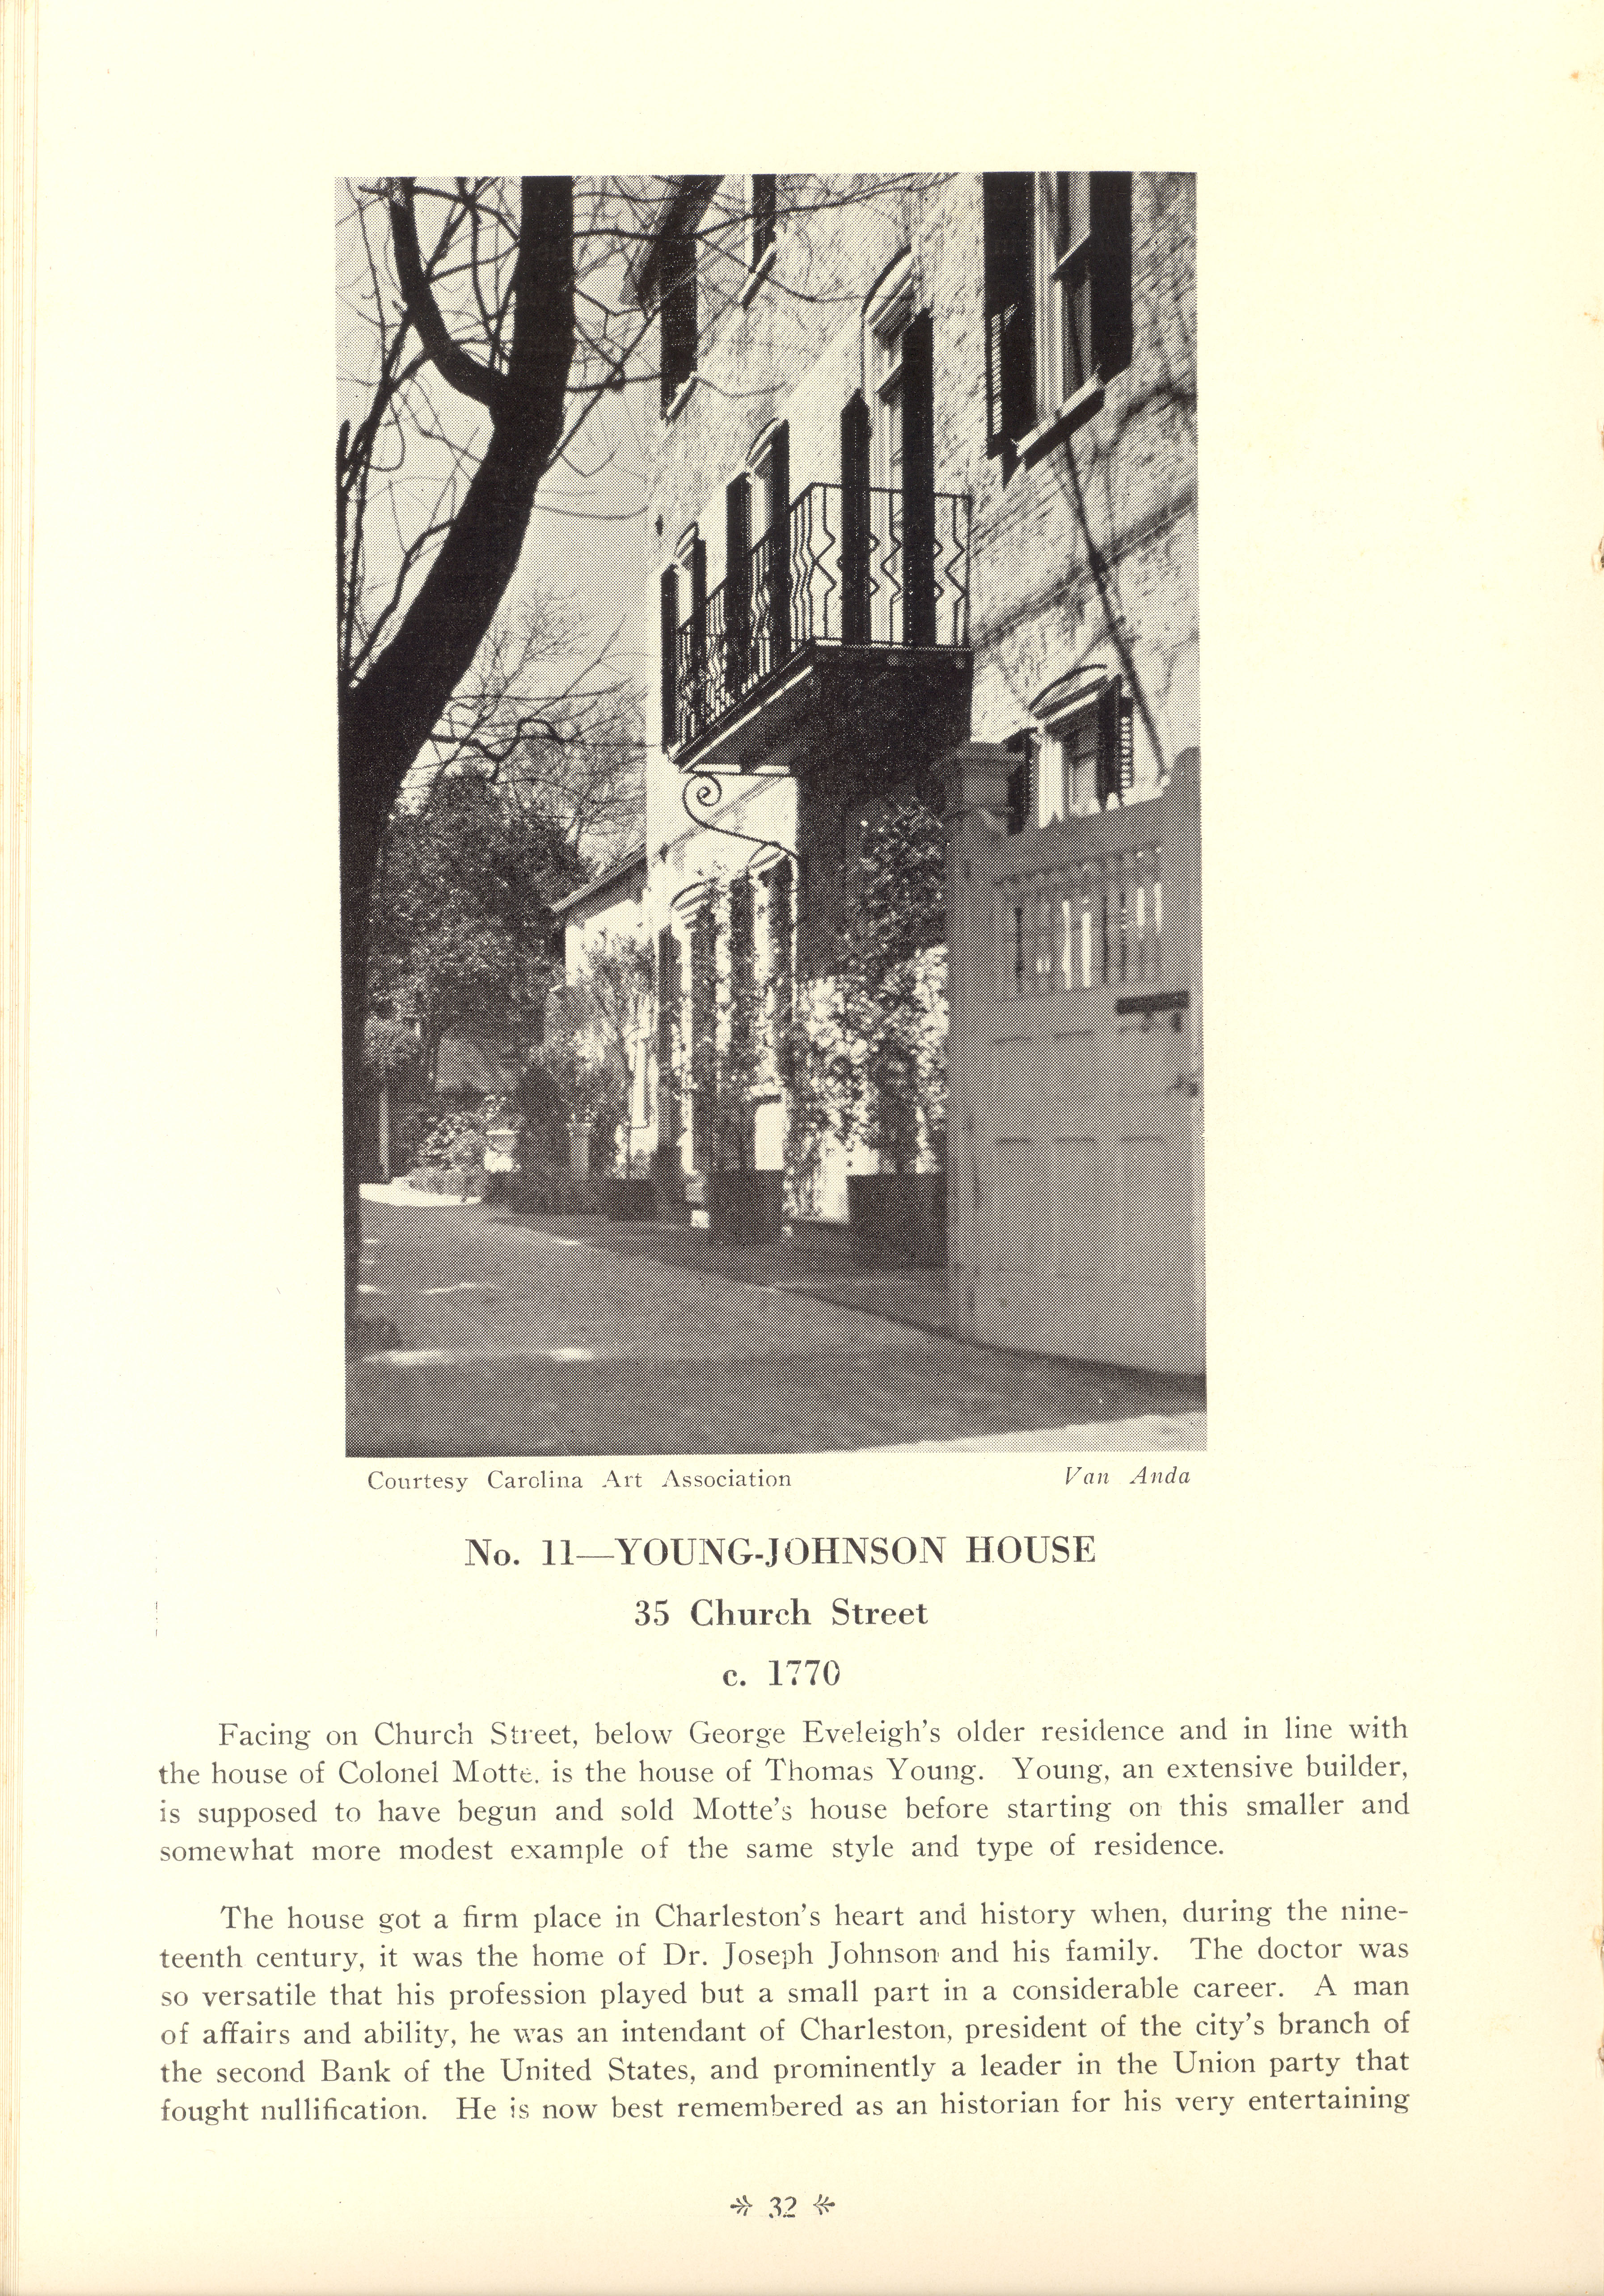 Page 32:  No. 11 - Young-Johnson House, 35 Church Street, c. 1780